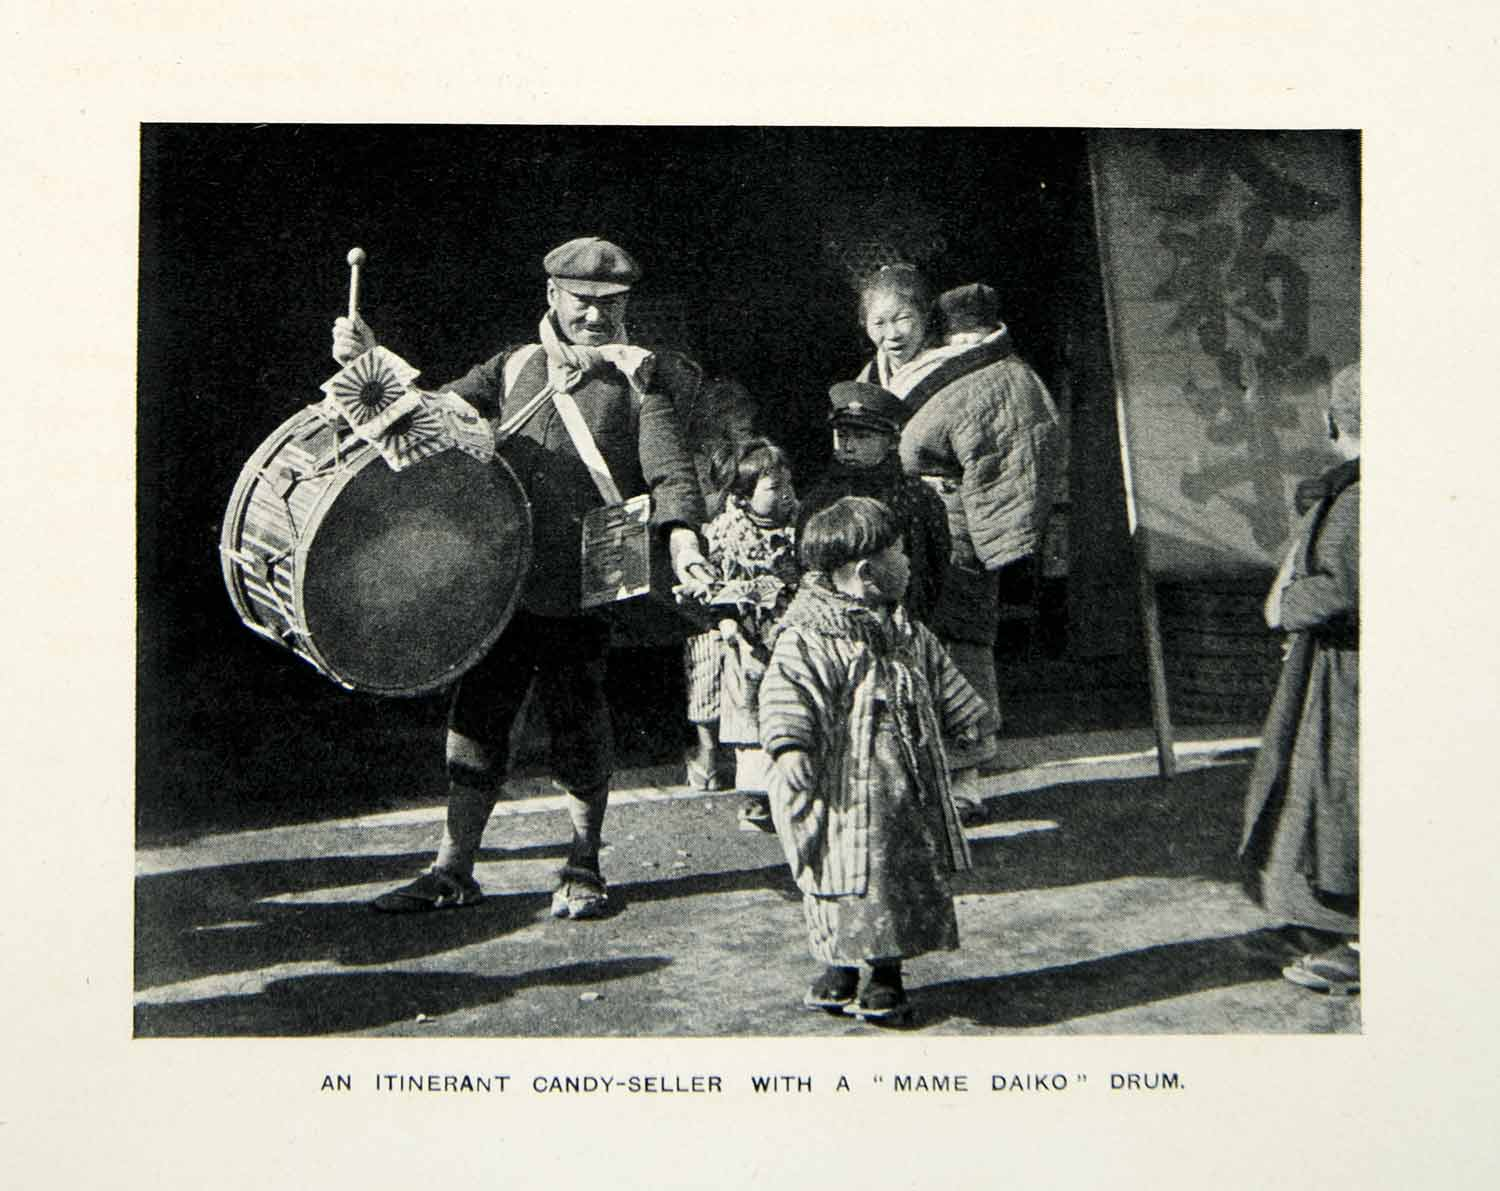 1909 Print Itinerant Candy Seller Merchant Mame Daiko Drum Children Japan XGQC7